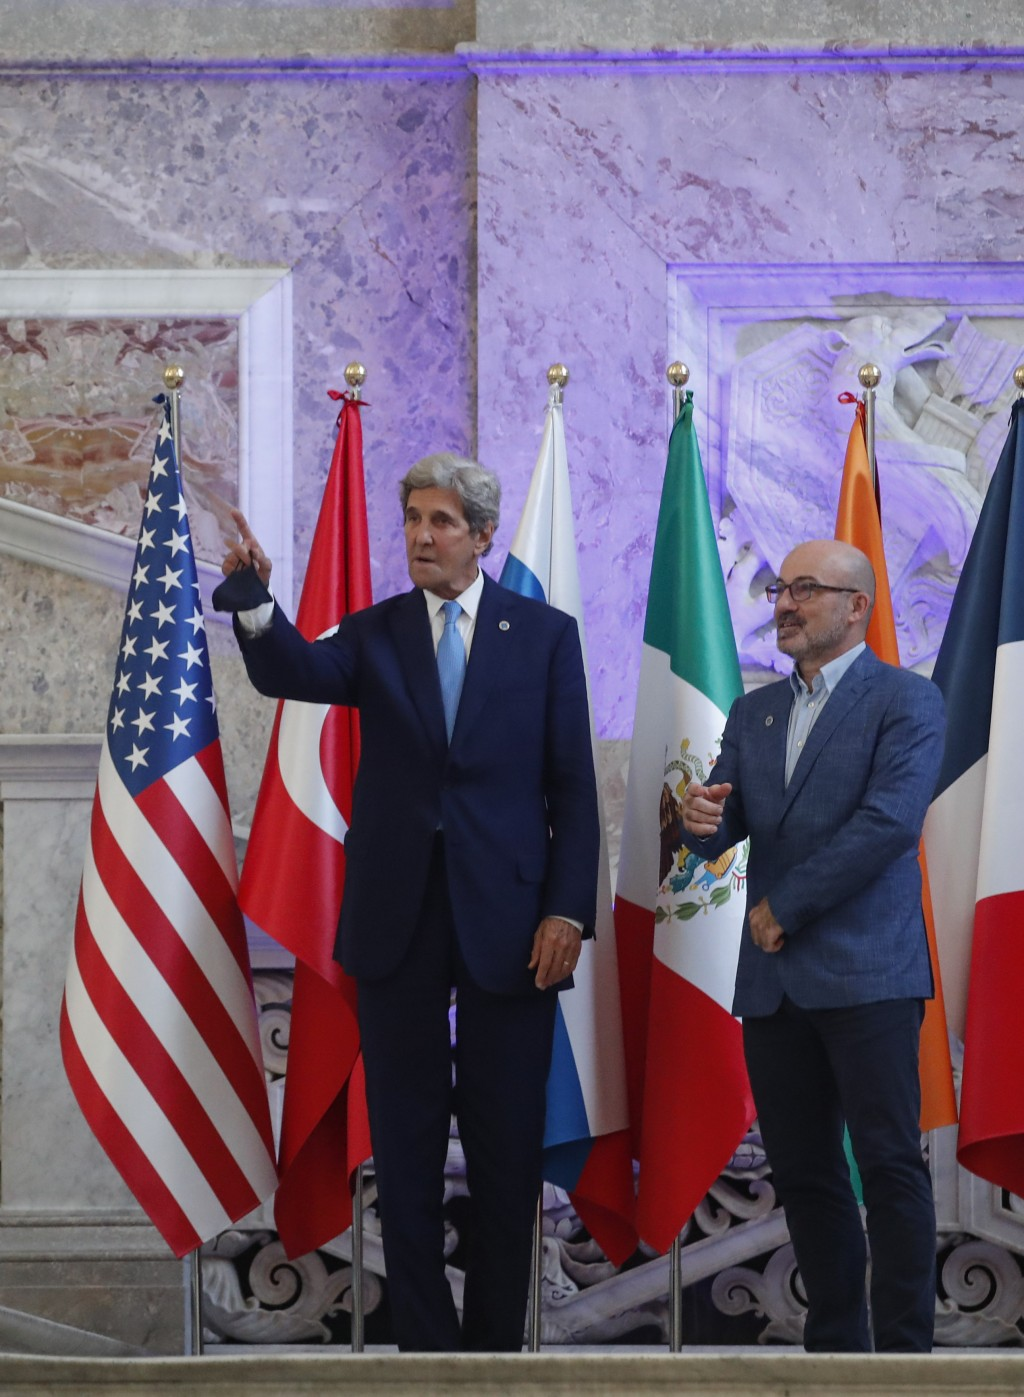 Special Presidential Envoy for Climate John Kerry and Italian Minister for Ecological Transition Roberto Cingolani pose during a photo opportunity at ...